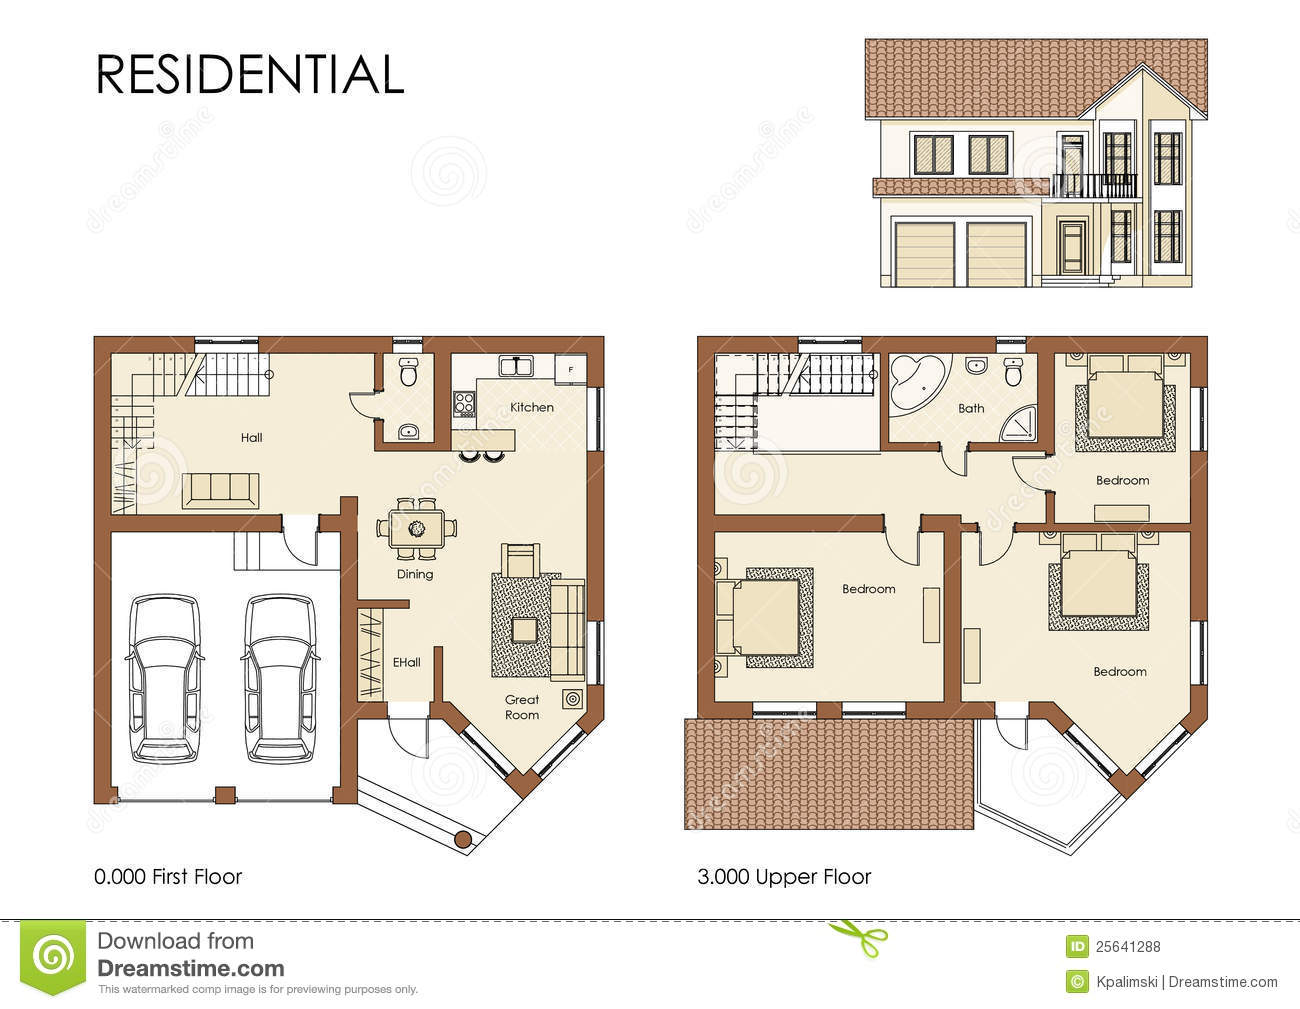 Residential house plan royalty free stock photos image 25641288 - Farmhouse plans ...